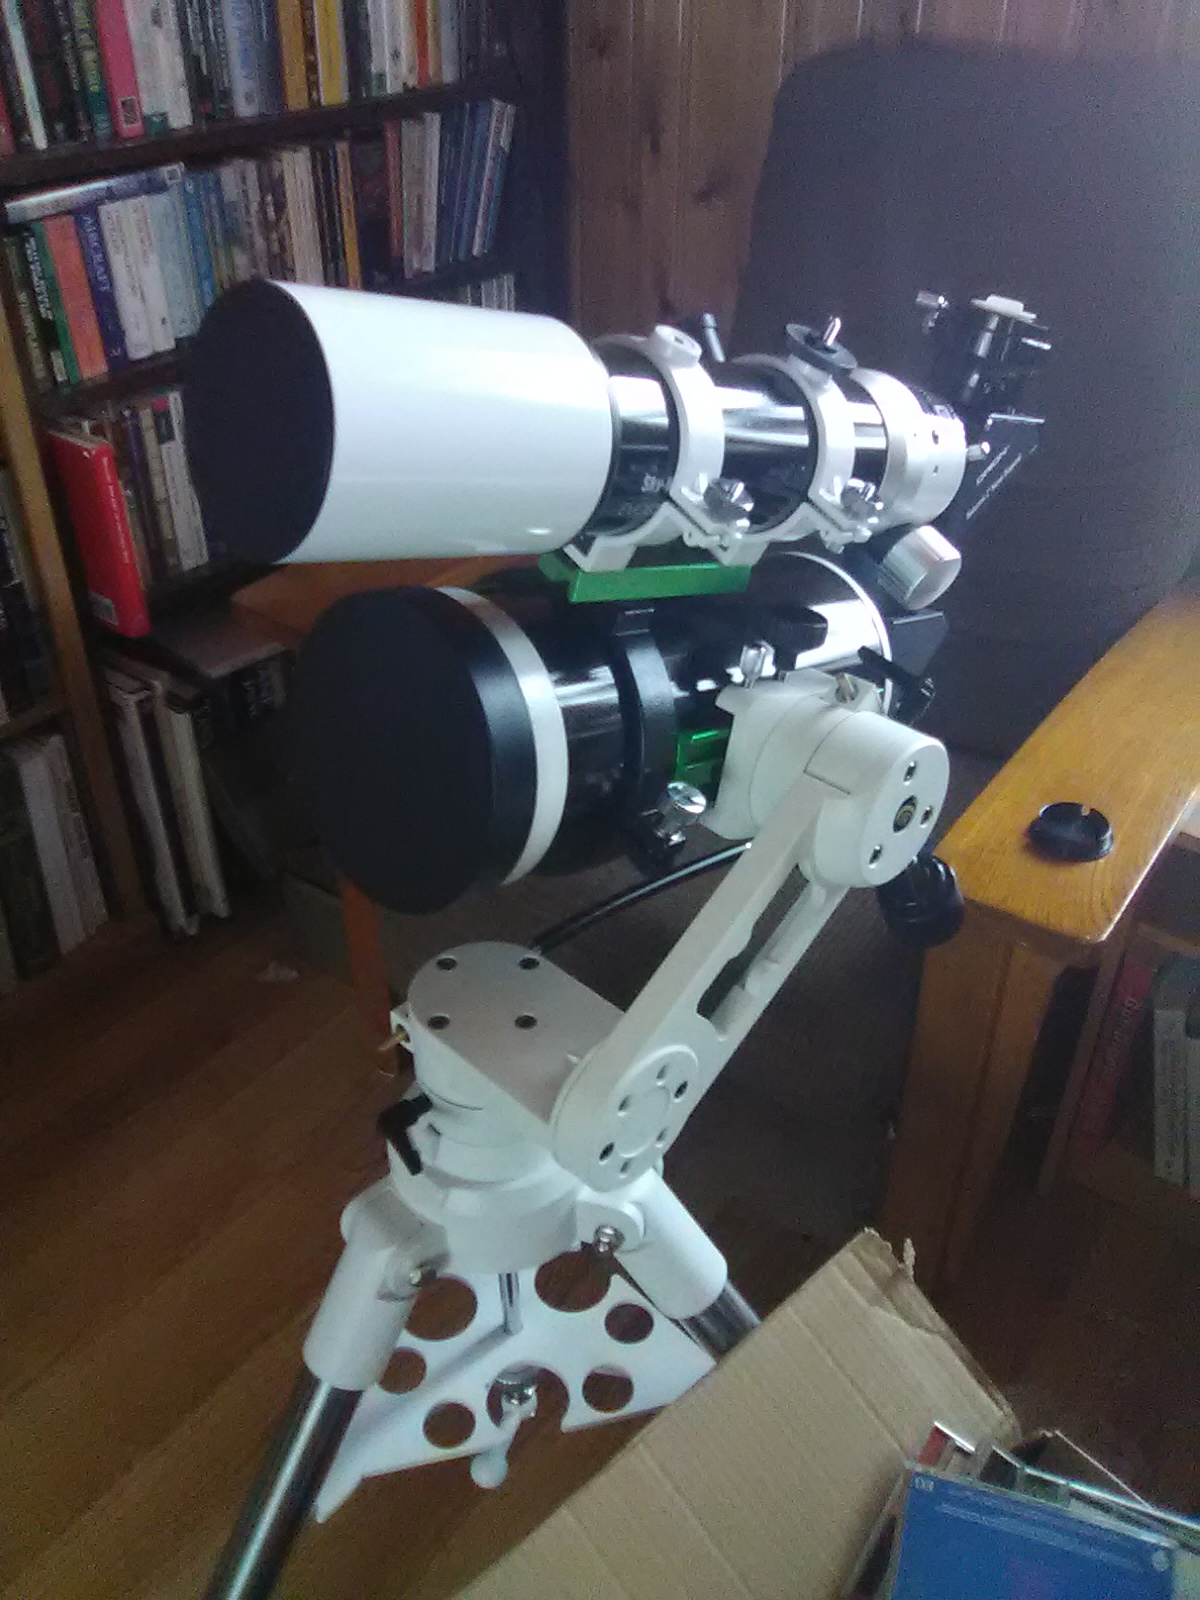 Though I didn't set them up like this, here's the two travel telescopes I took and tested on the trip